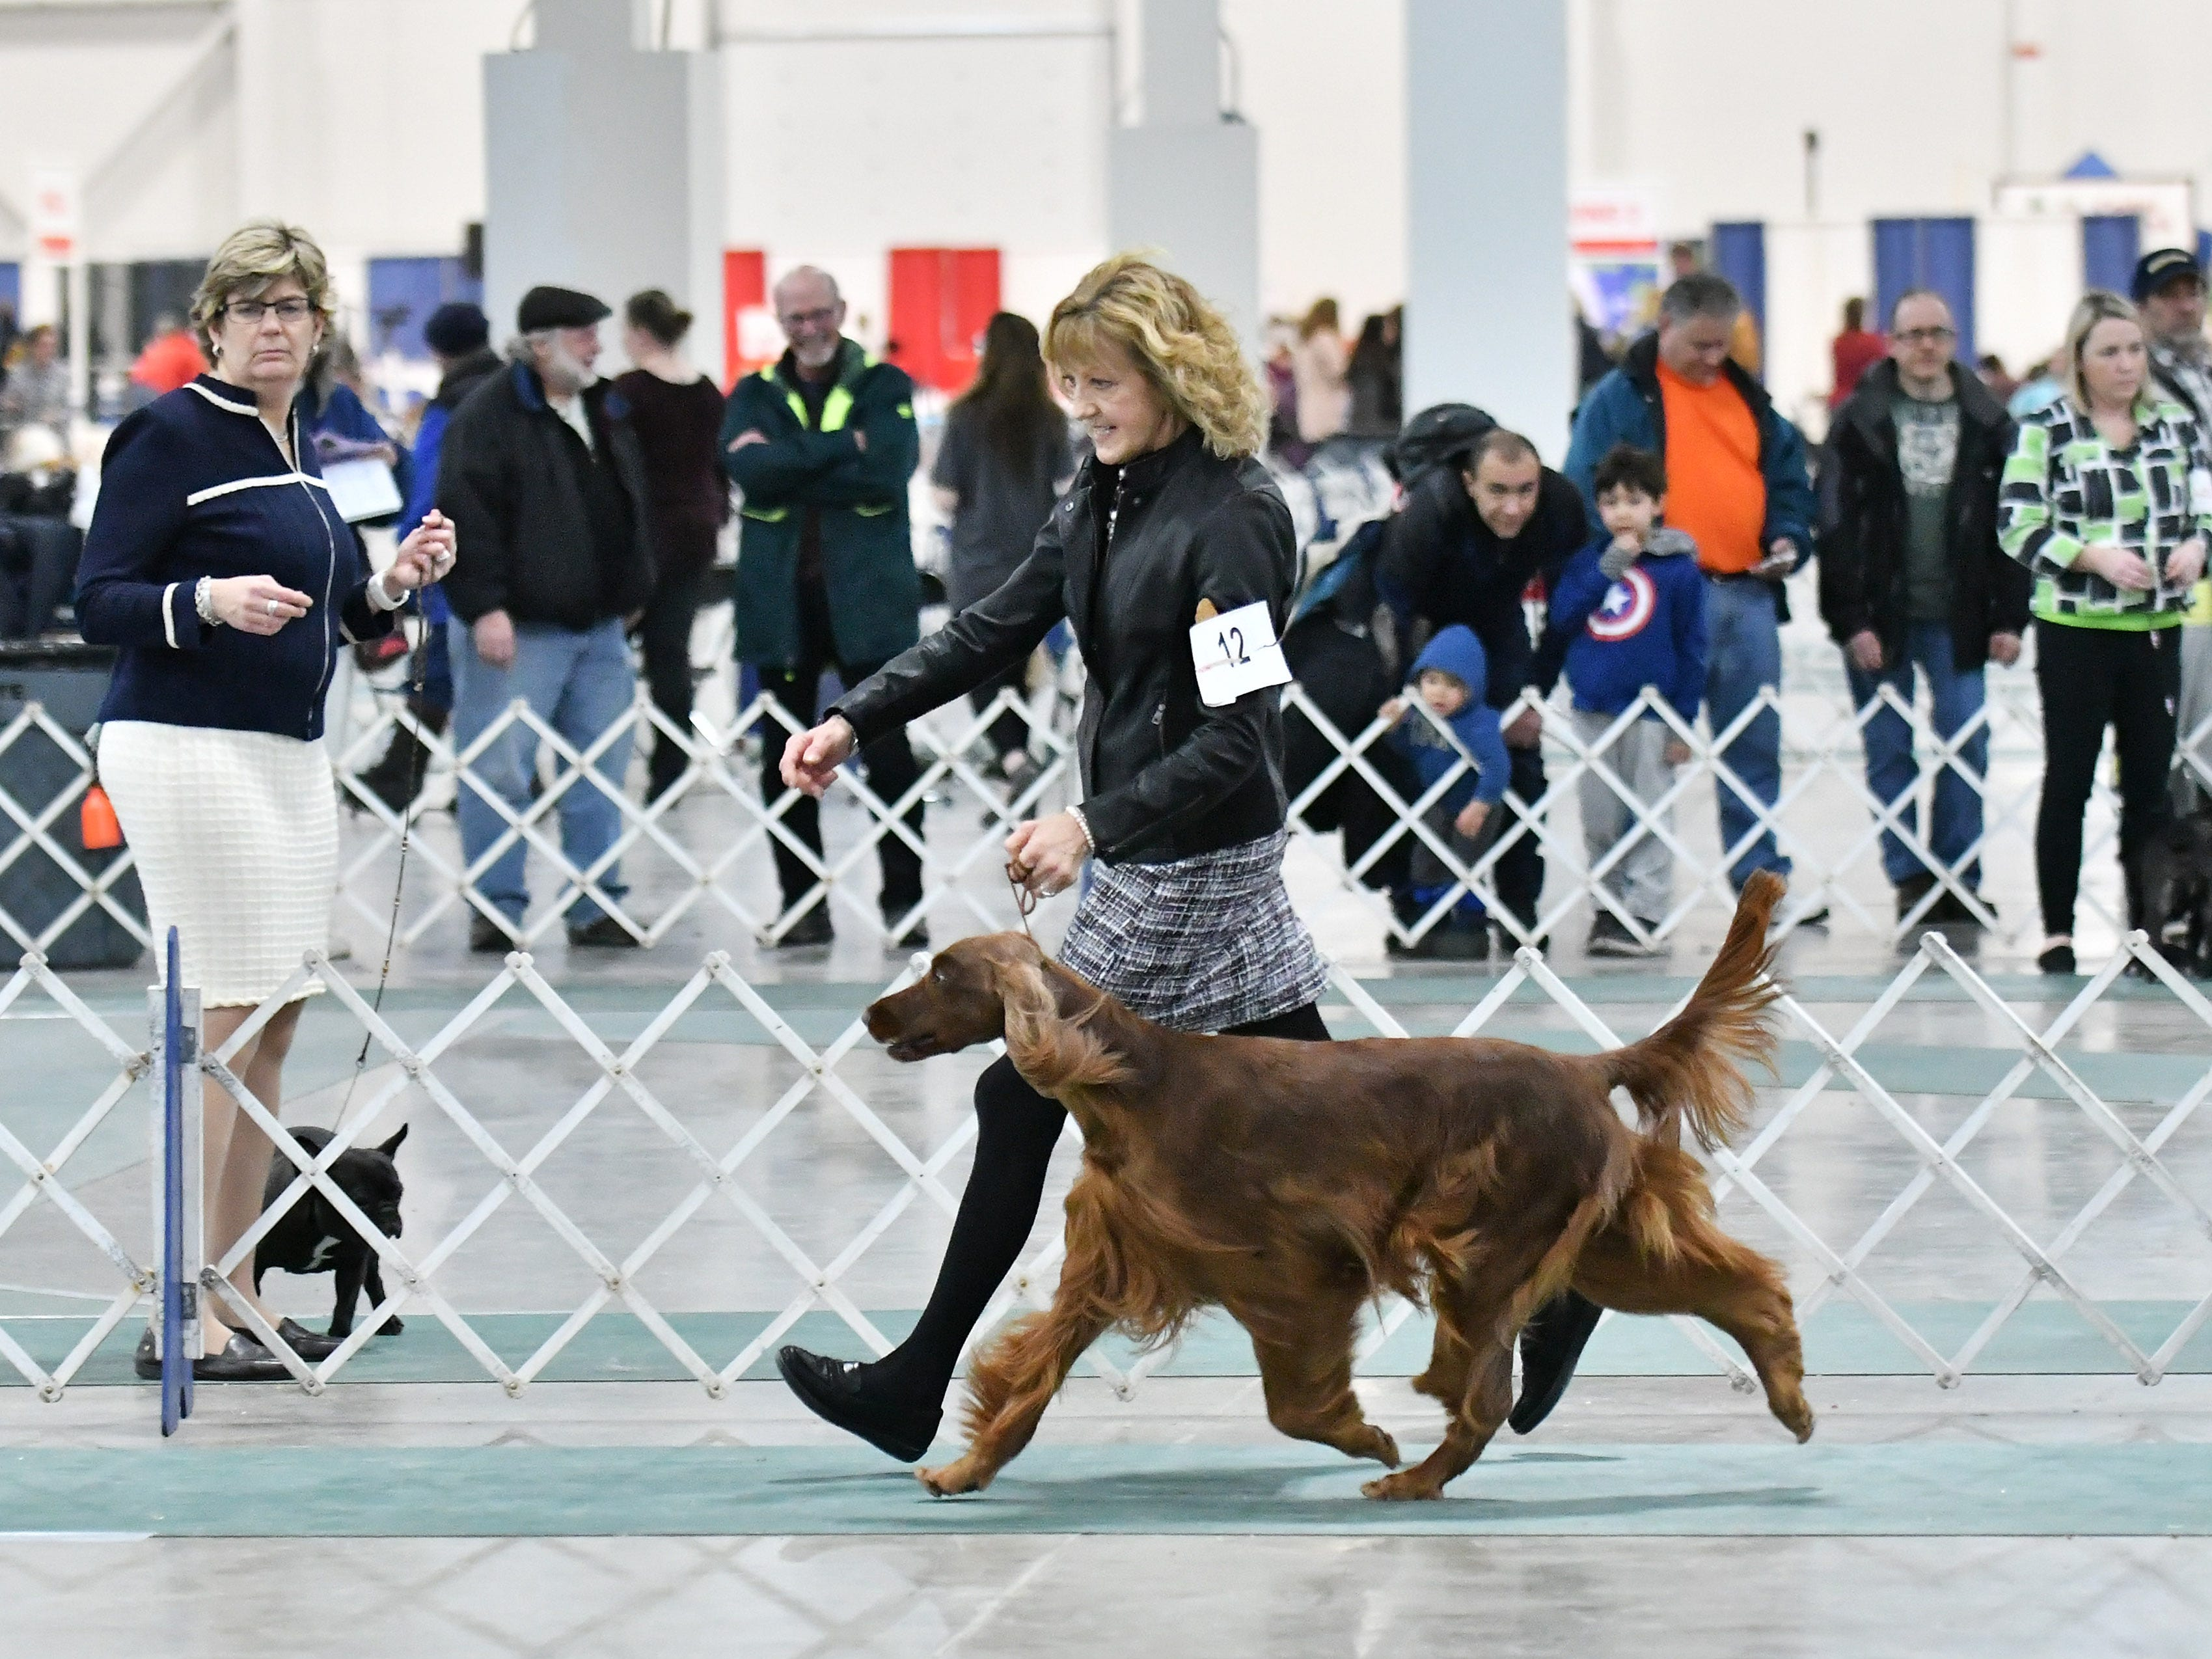 Toni Whipple of Taylor, left, show her Irish setter, Teezer, during competition at the Michigan Winter Dog Classic.